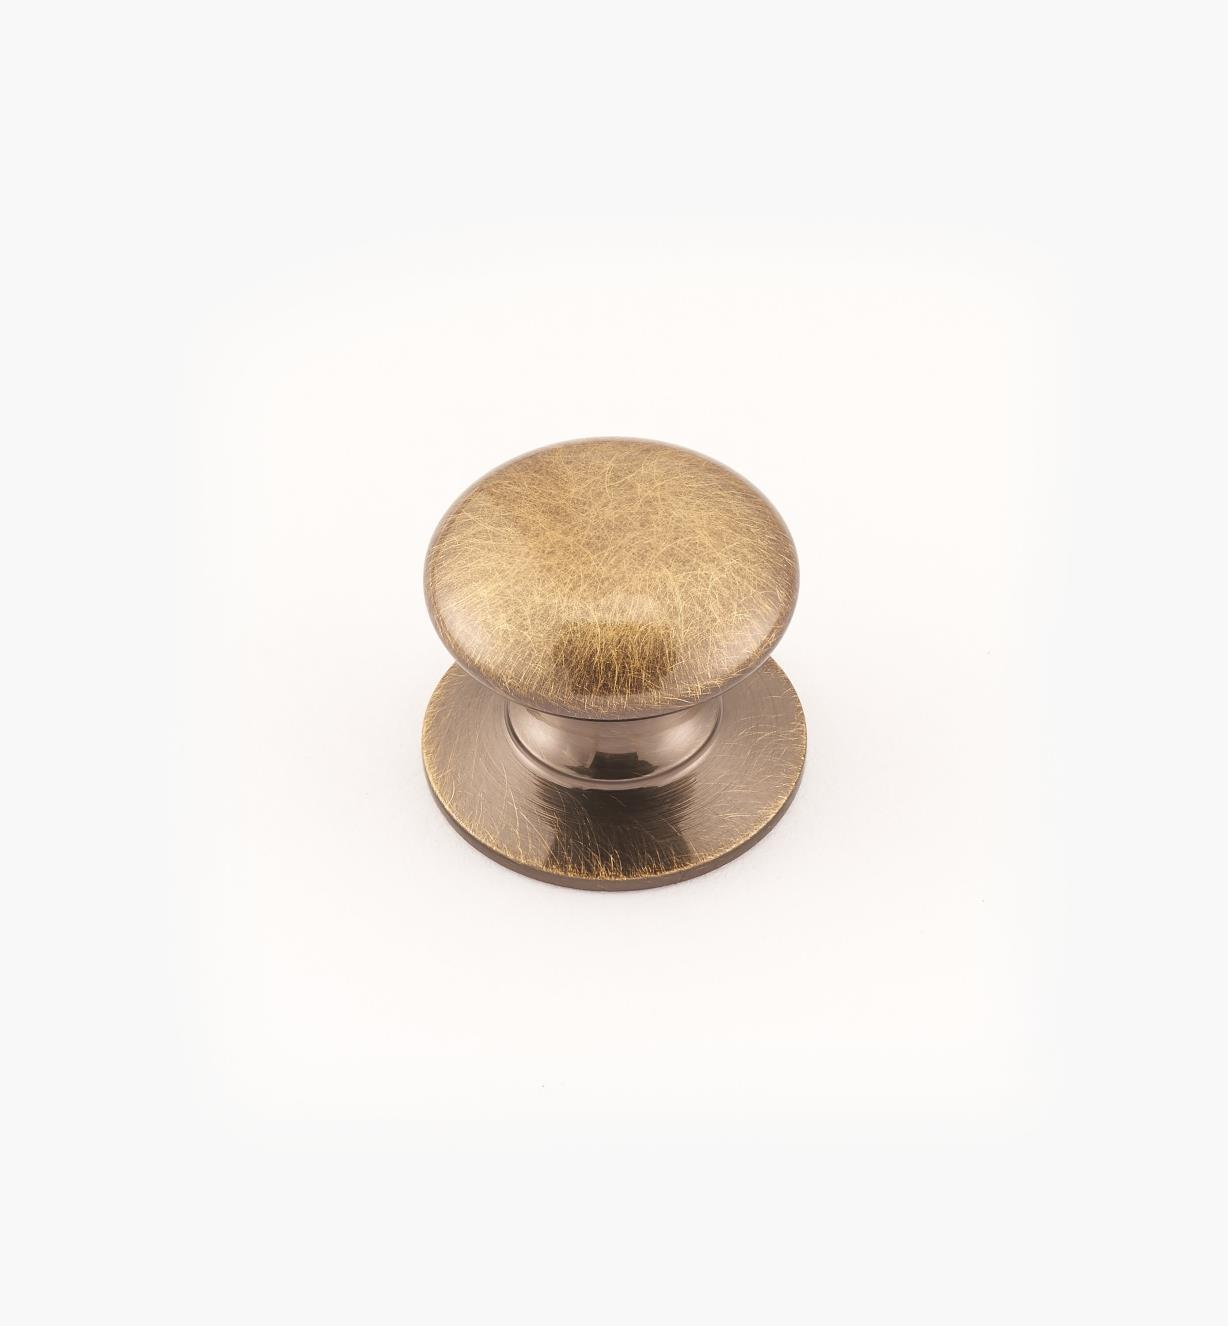 "02W2717 - Antique Brass Suite - 3/4"" x 5/8"" Round Brass Knob"